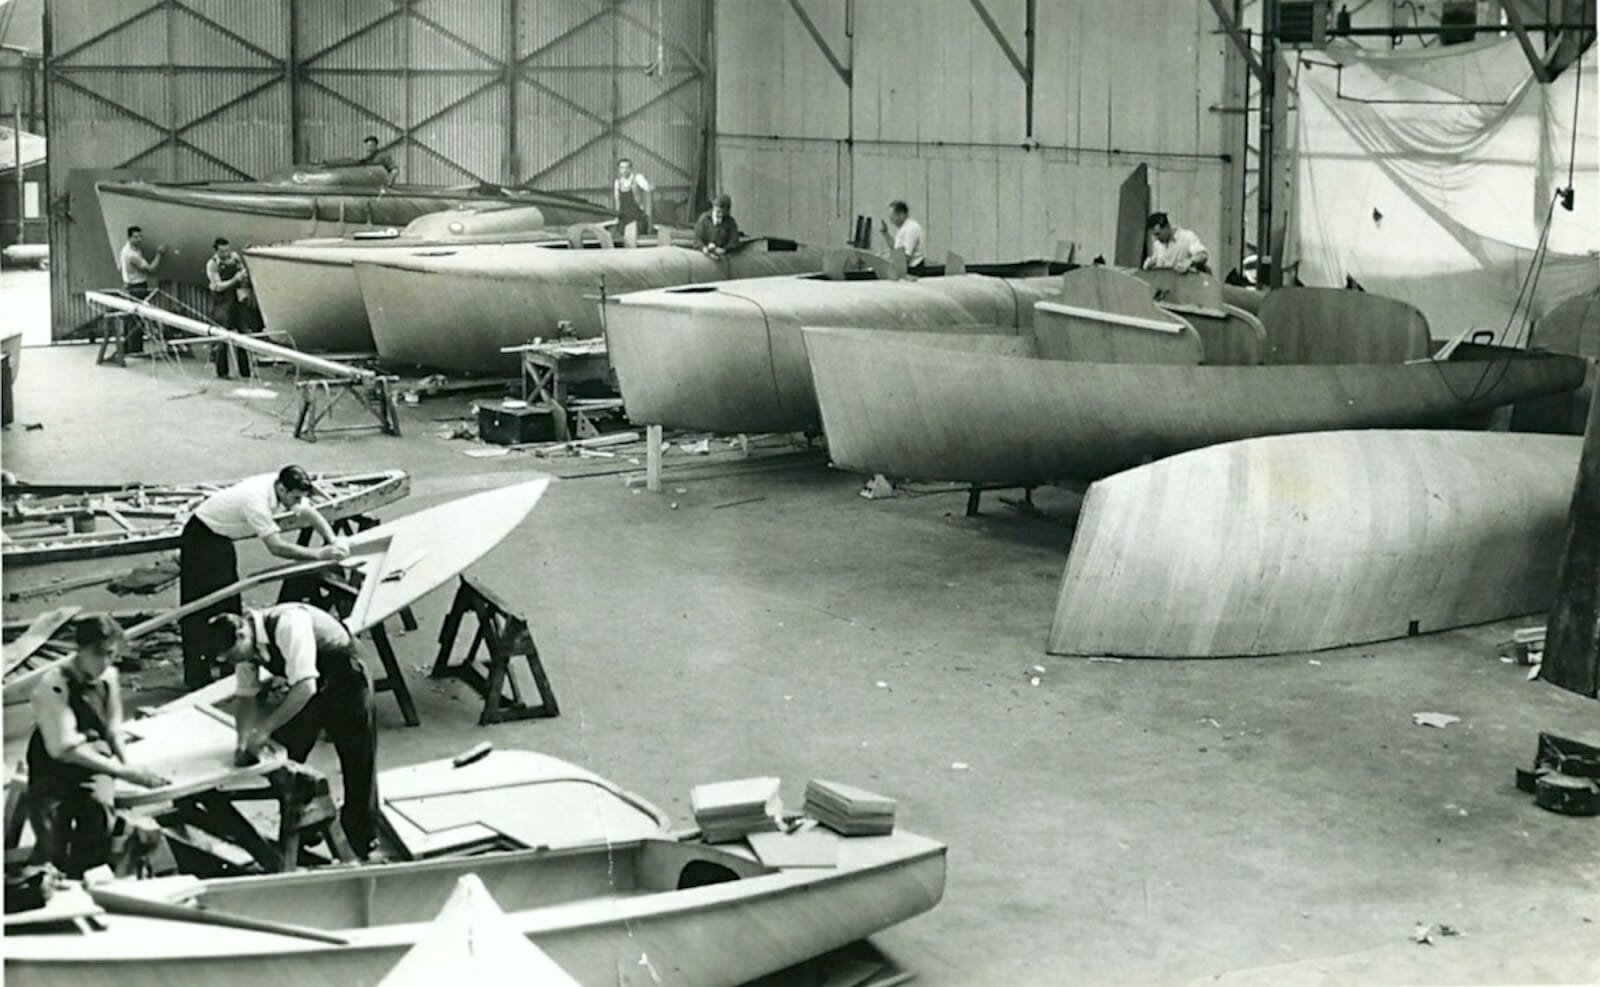 Atalanta hulls in the Fairey Factory